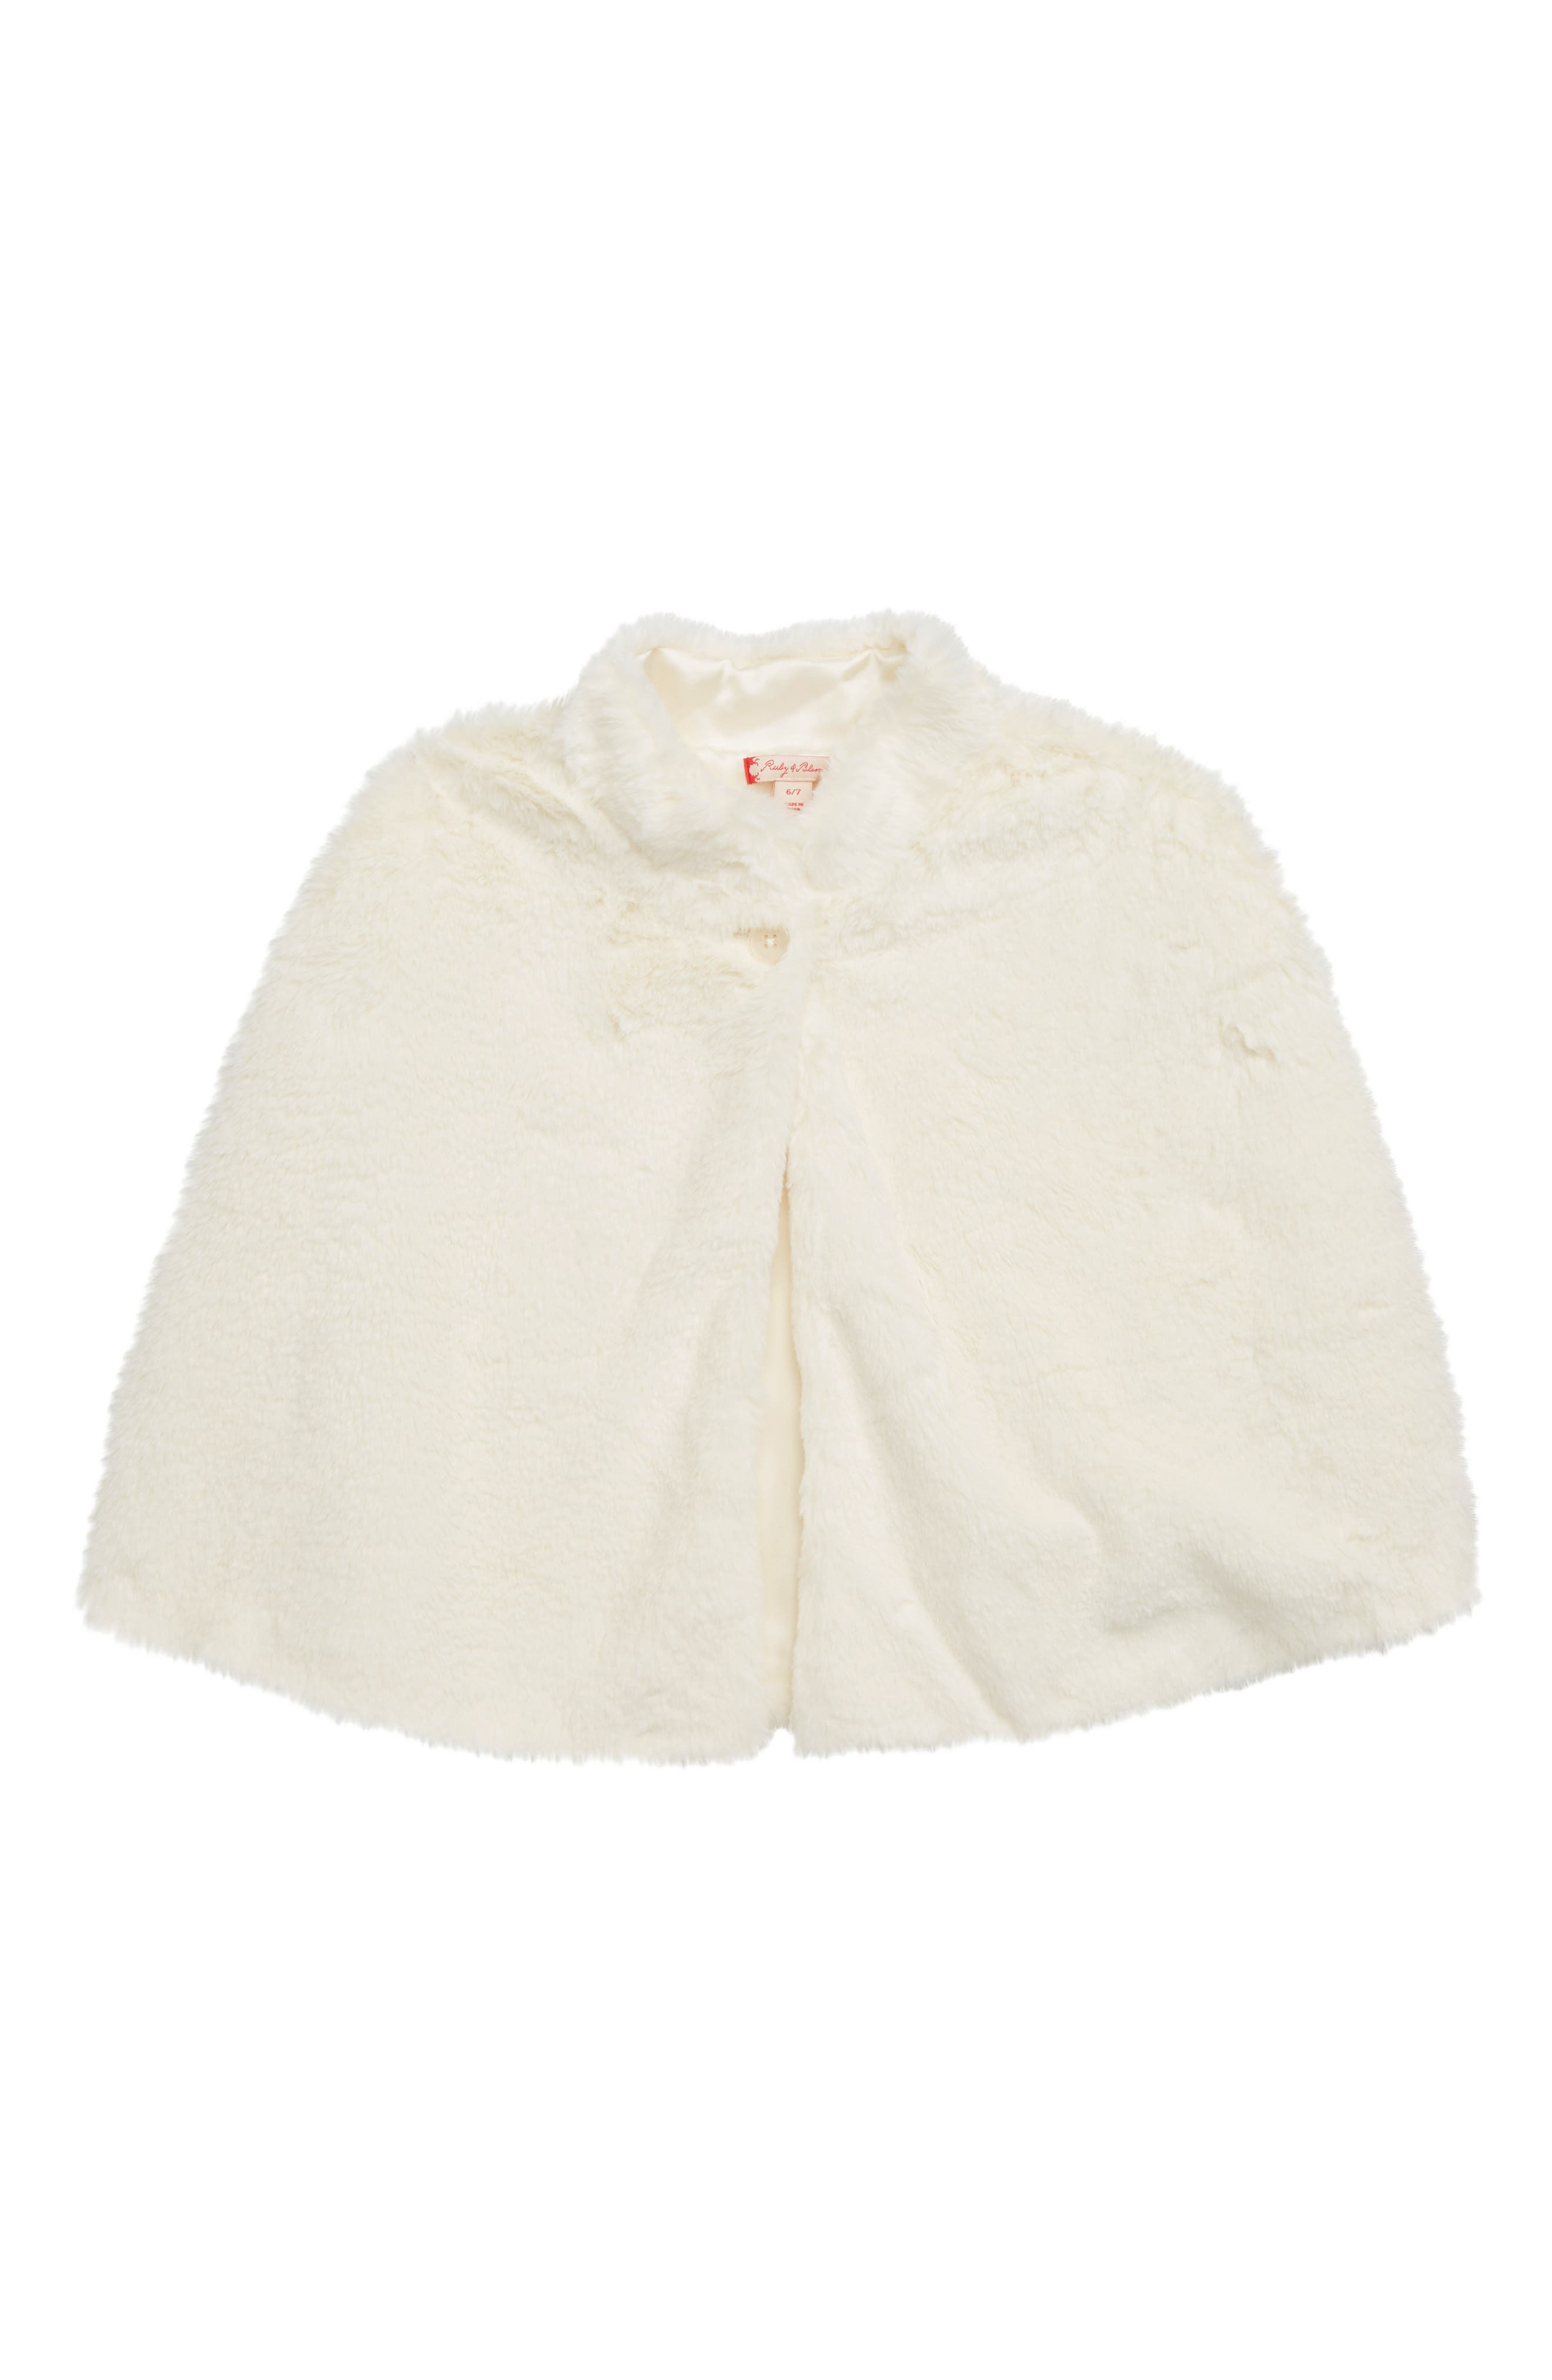 Kids 1950s Clothing & Costumes: Girls, Boys, Toddlers Toddler Girls Ruby  Bloom Faux Fur Cape Size 2-3T - Ivory $32.98 AT vintagedancer.com